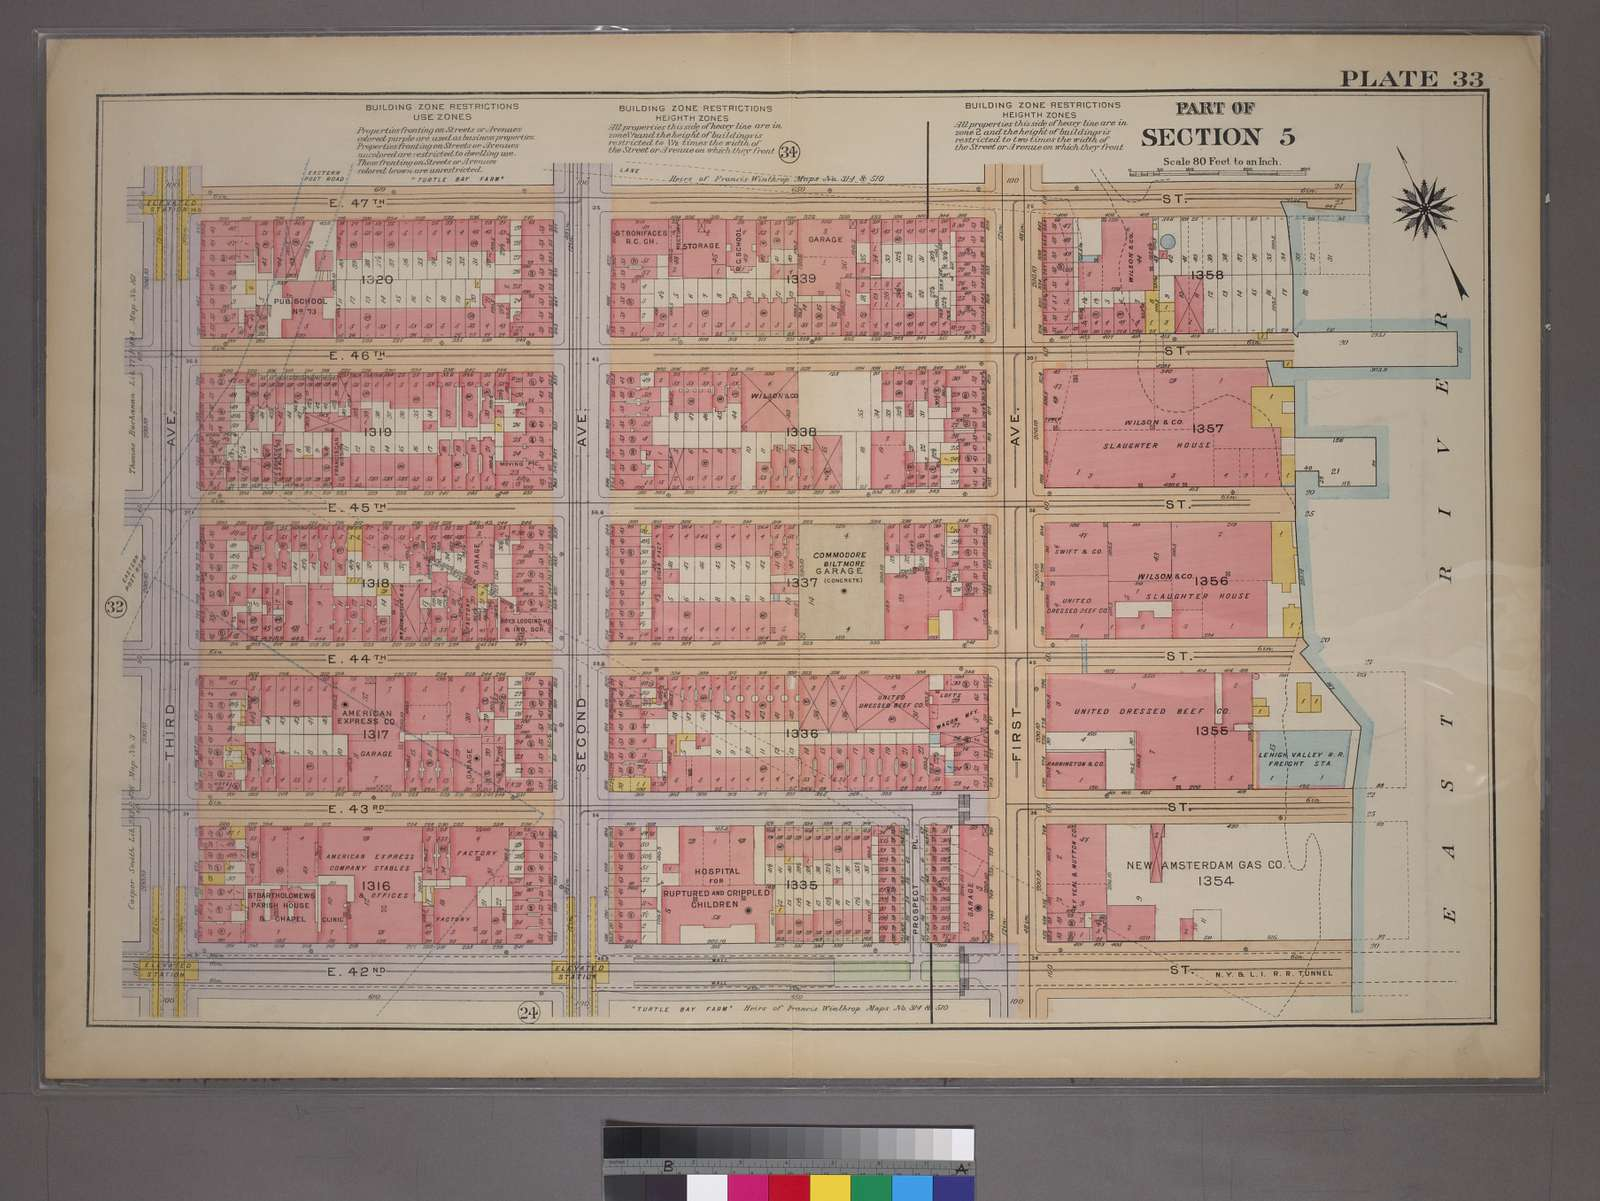 Plate 33, Part of Section 5: [Bounded by E. 47th Street, (East River Piers), First Avenue, E. 42nd Street and Third Avenue]